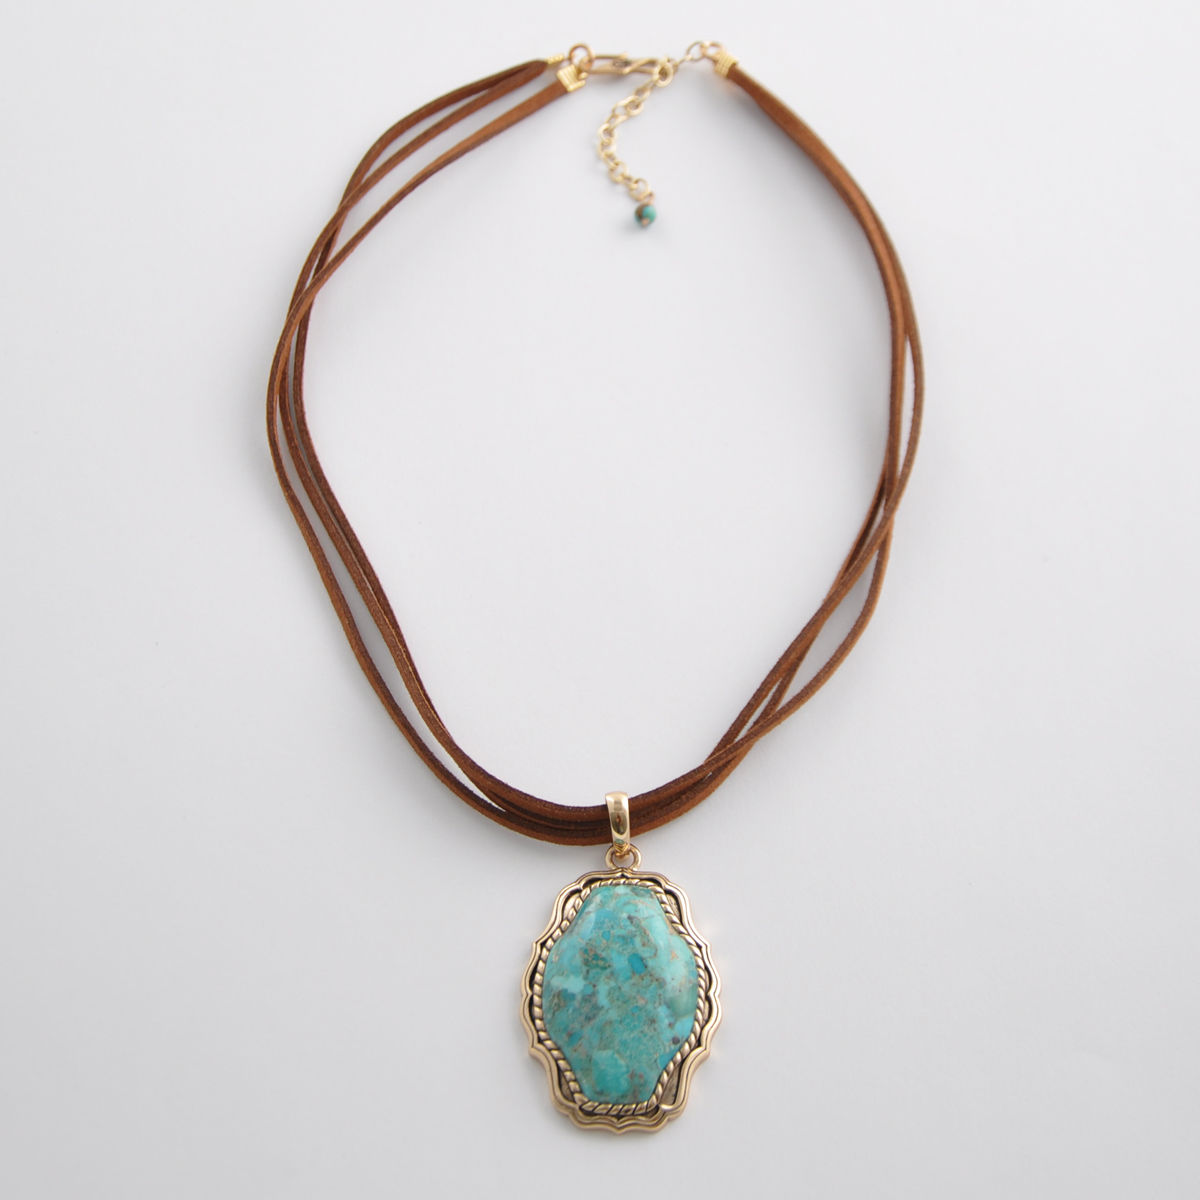 classy leather necklace design